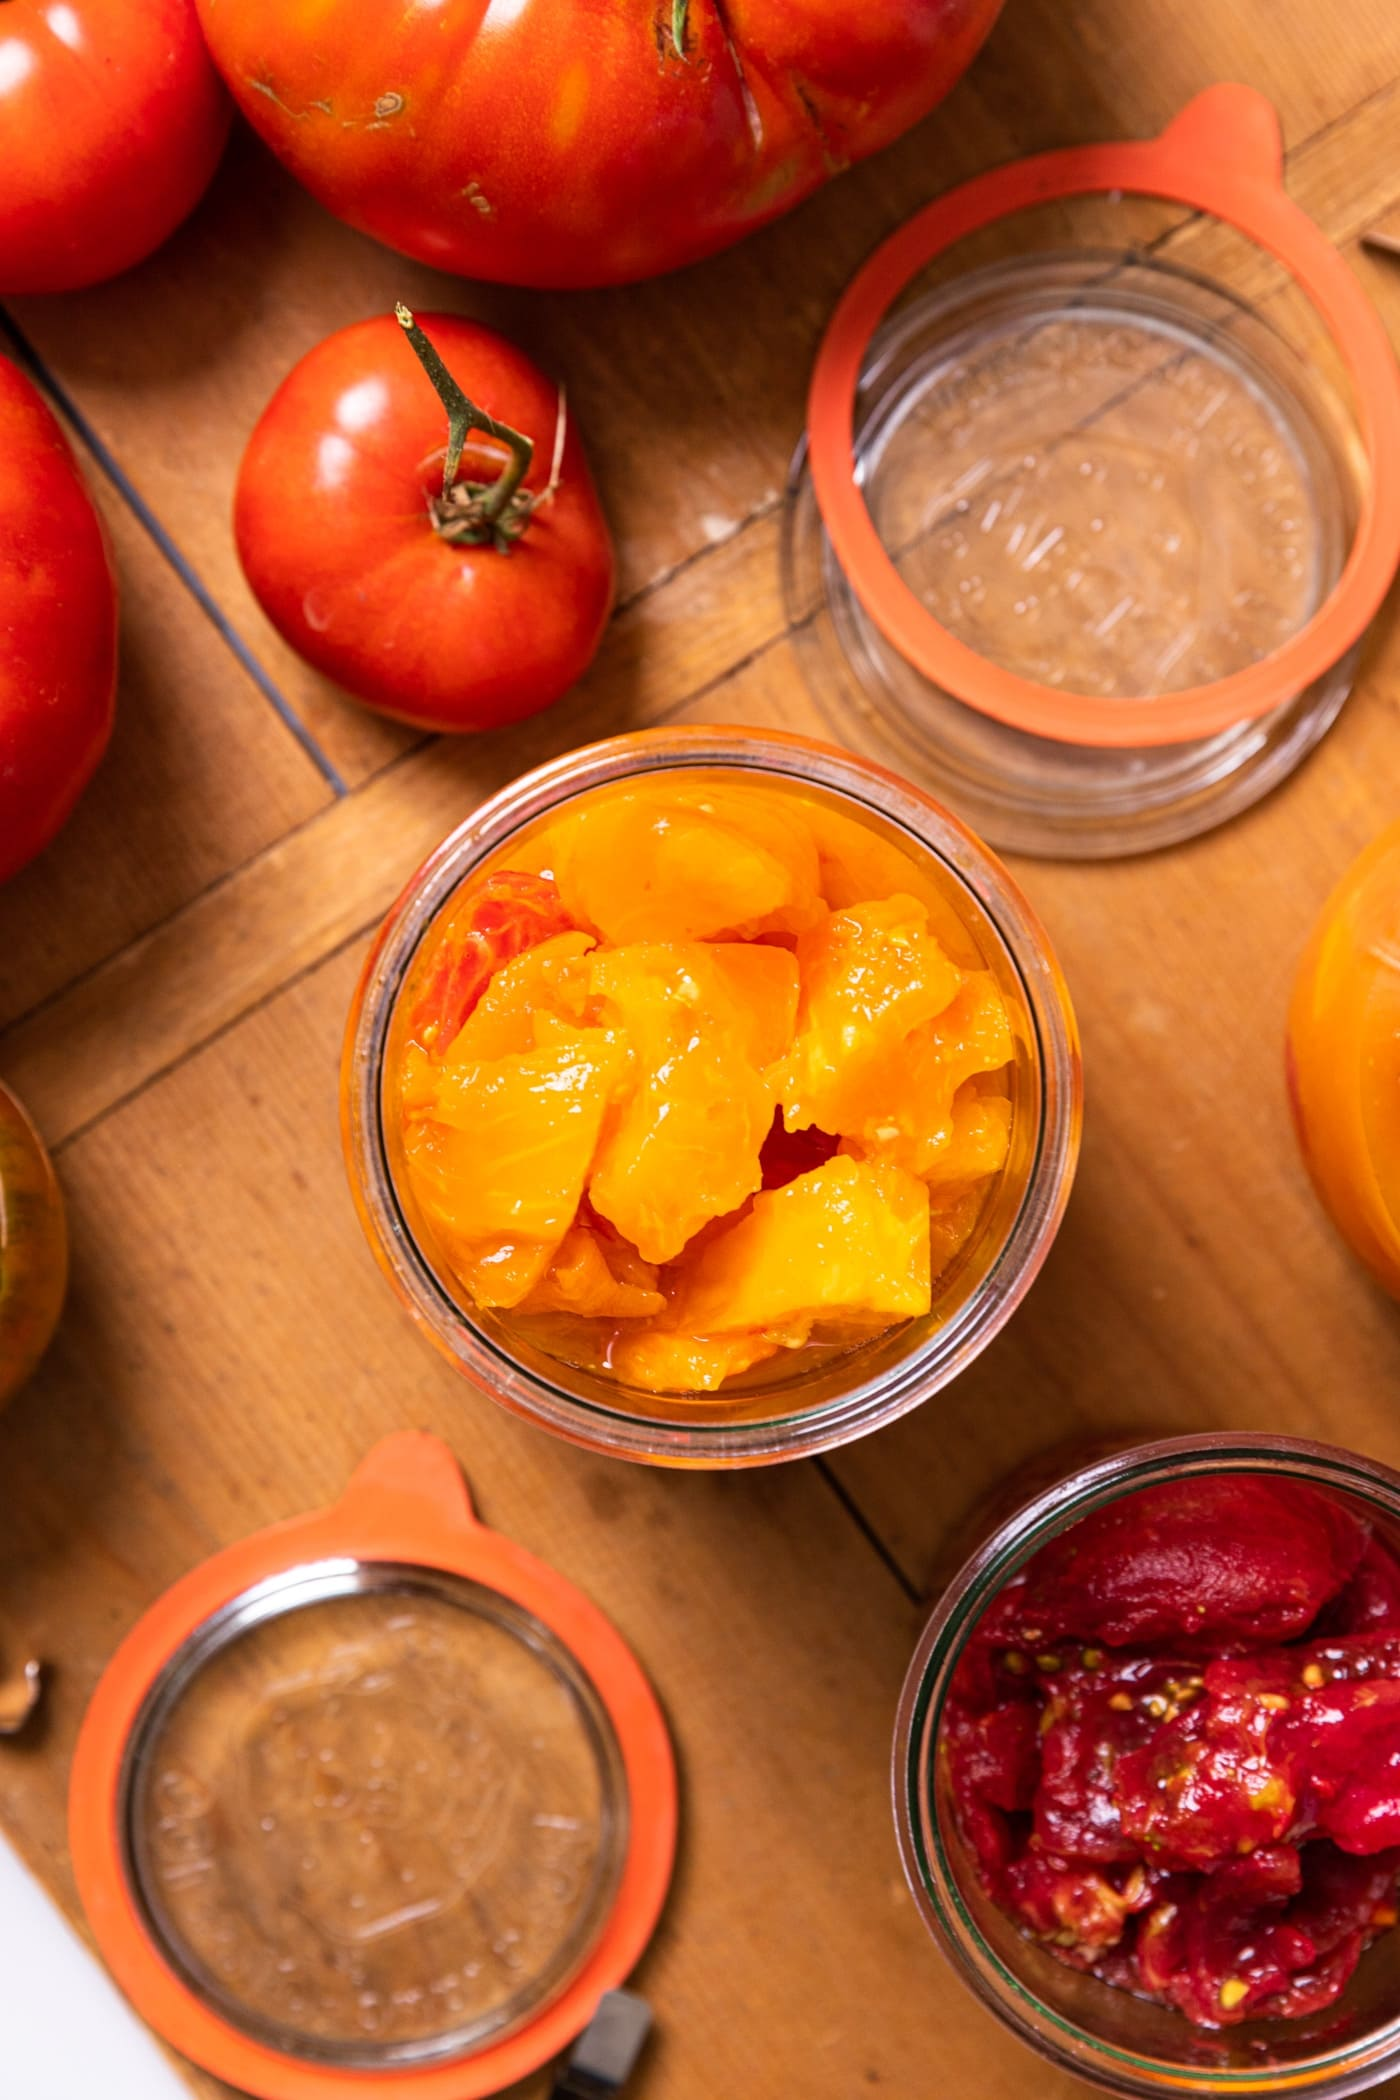 Top down view of yellow and orange colored tomatoes sitting in glass jar with extra tomatoes sitting around on wood board